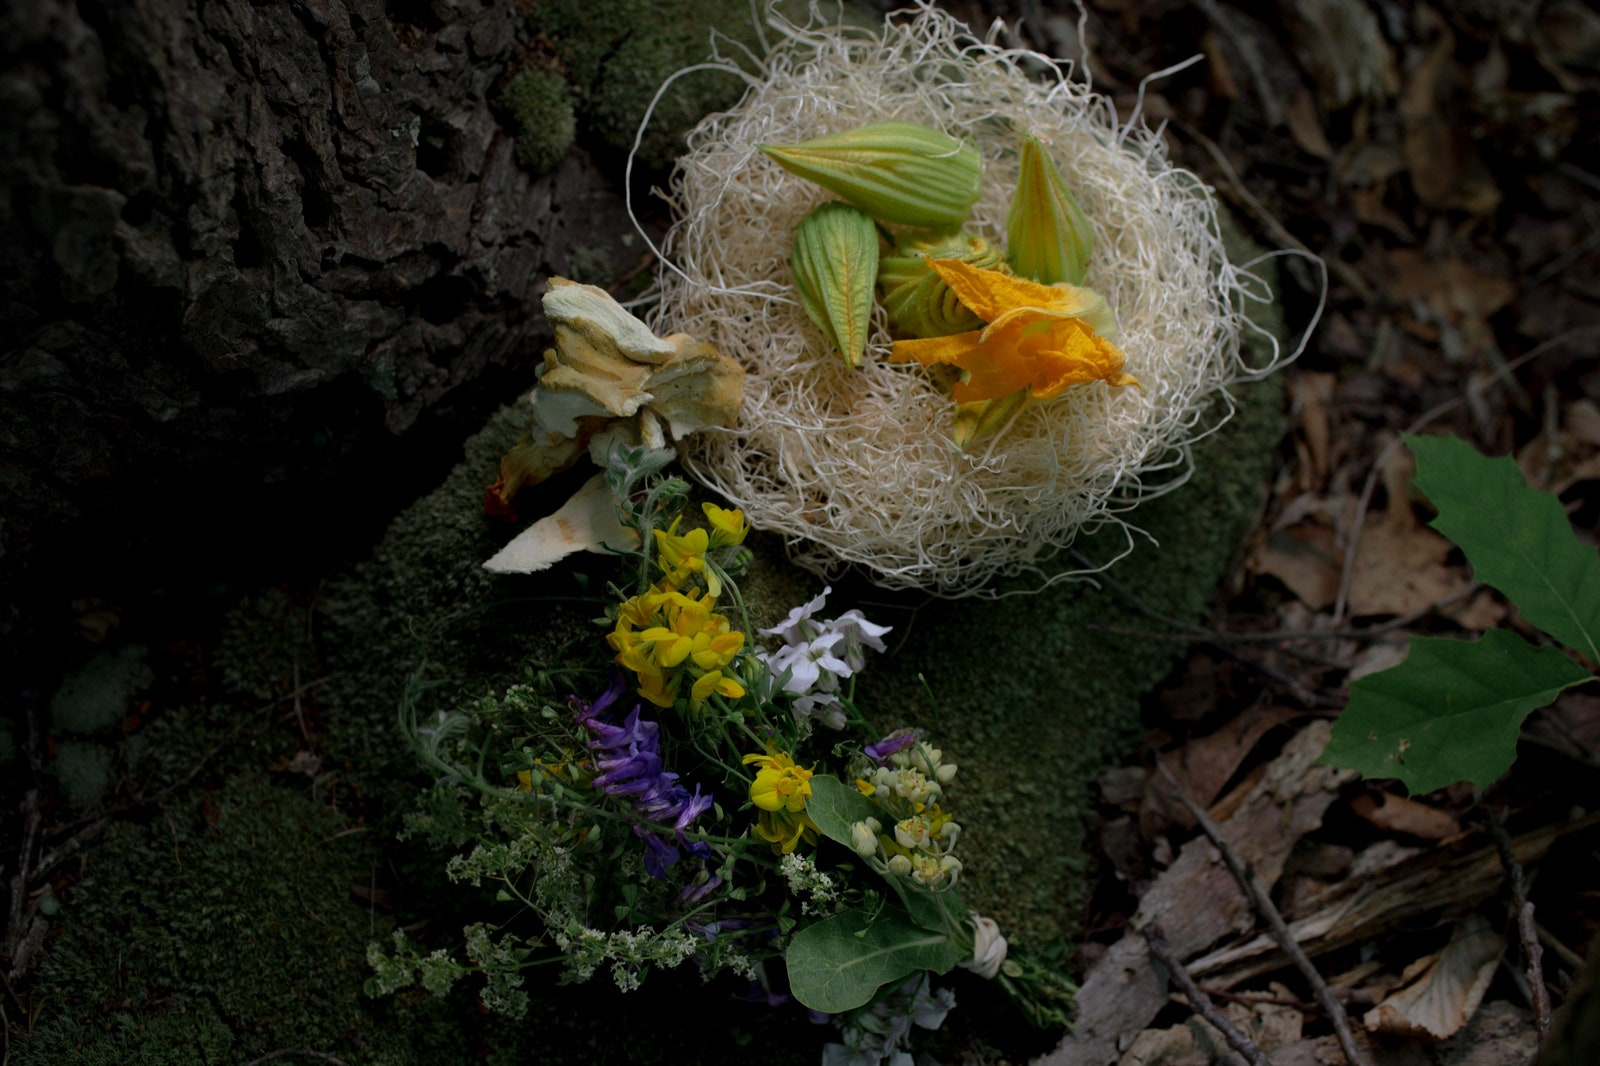 Basket with flowers.